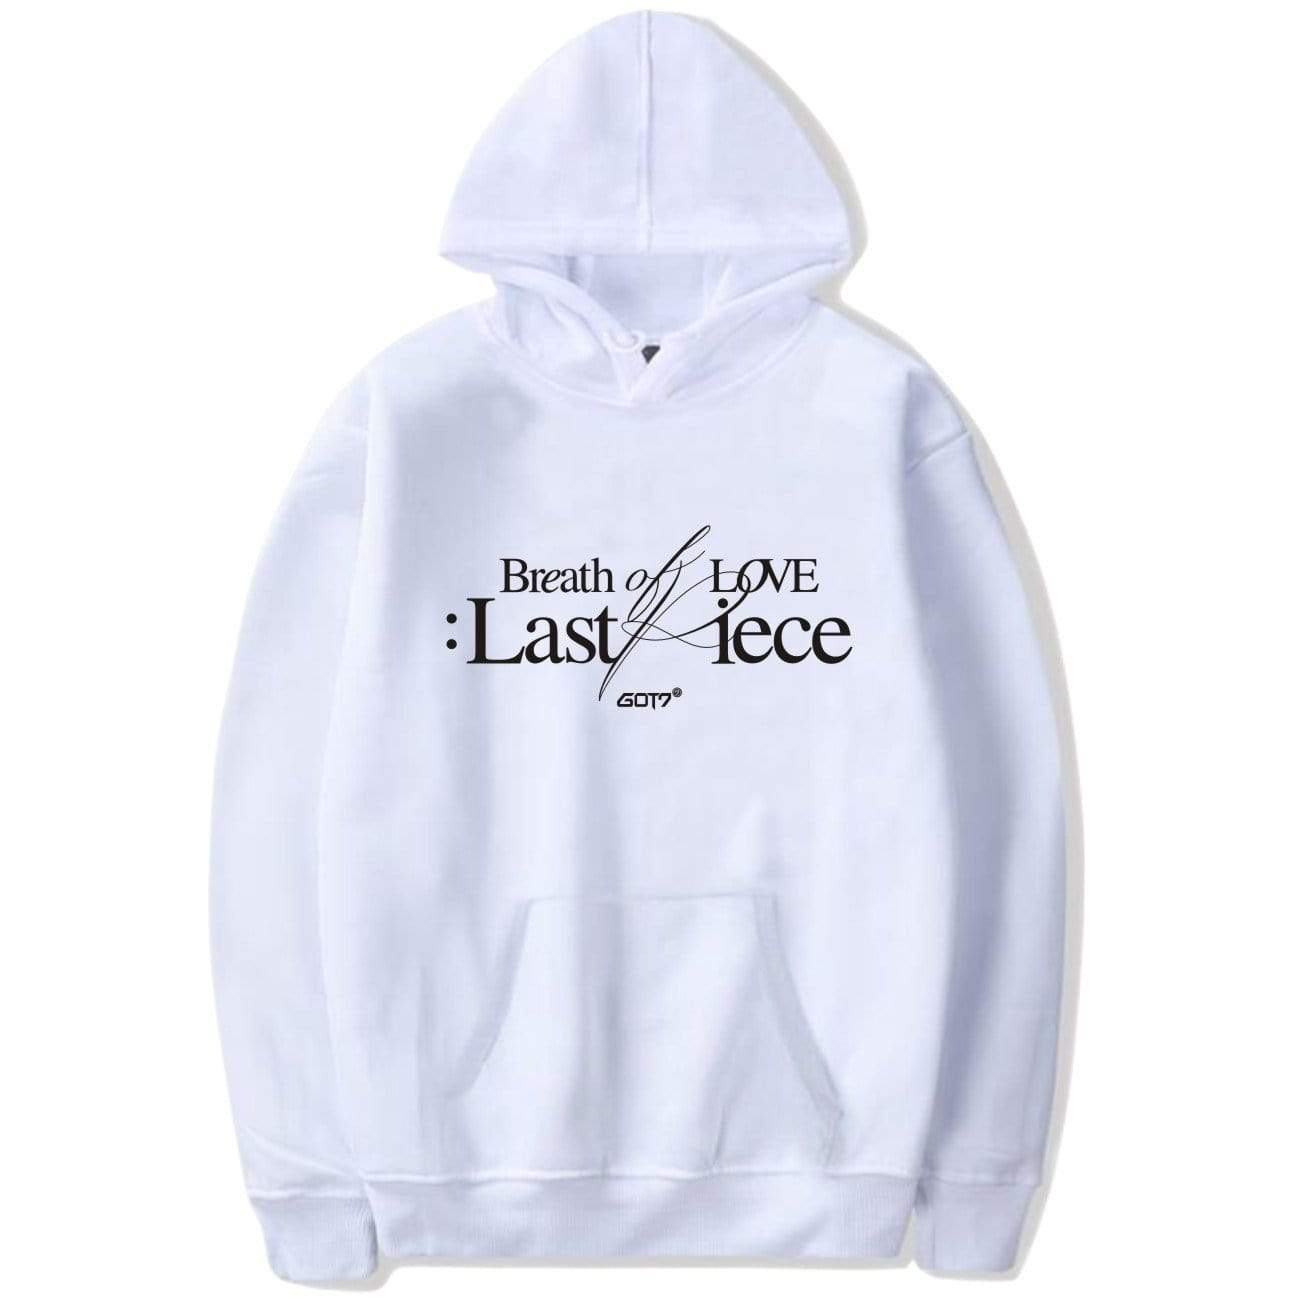 GOT7 Breath of Love Hoodie